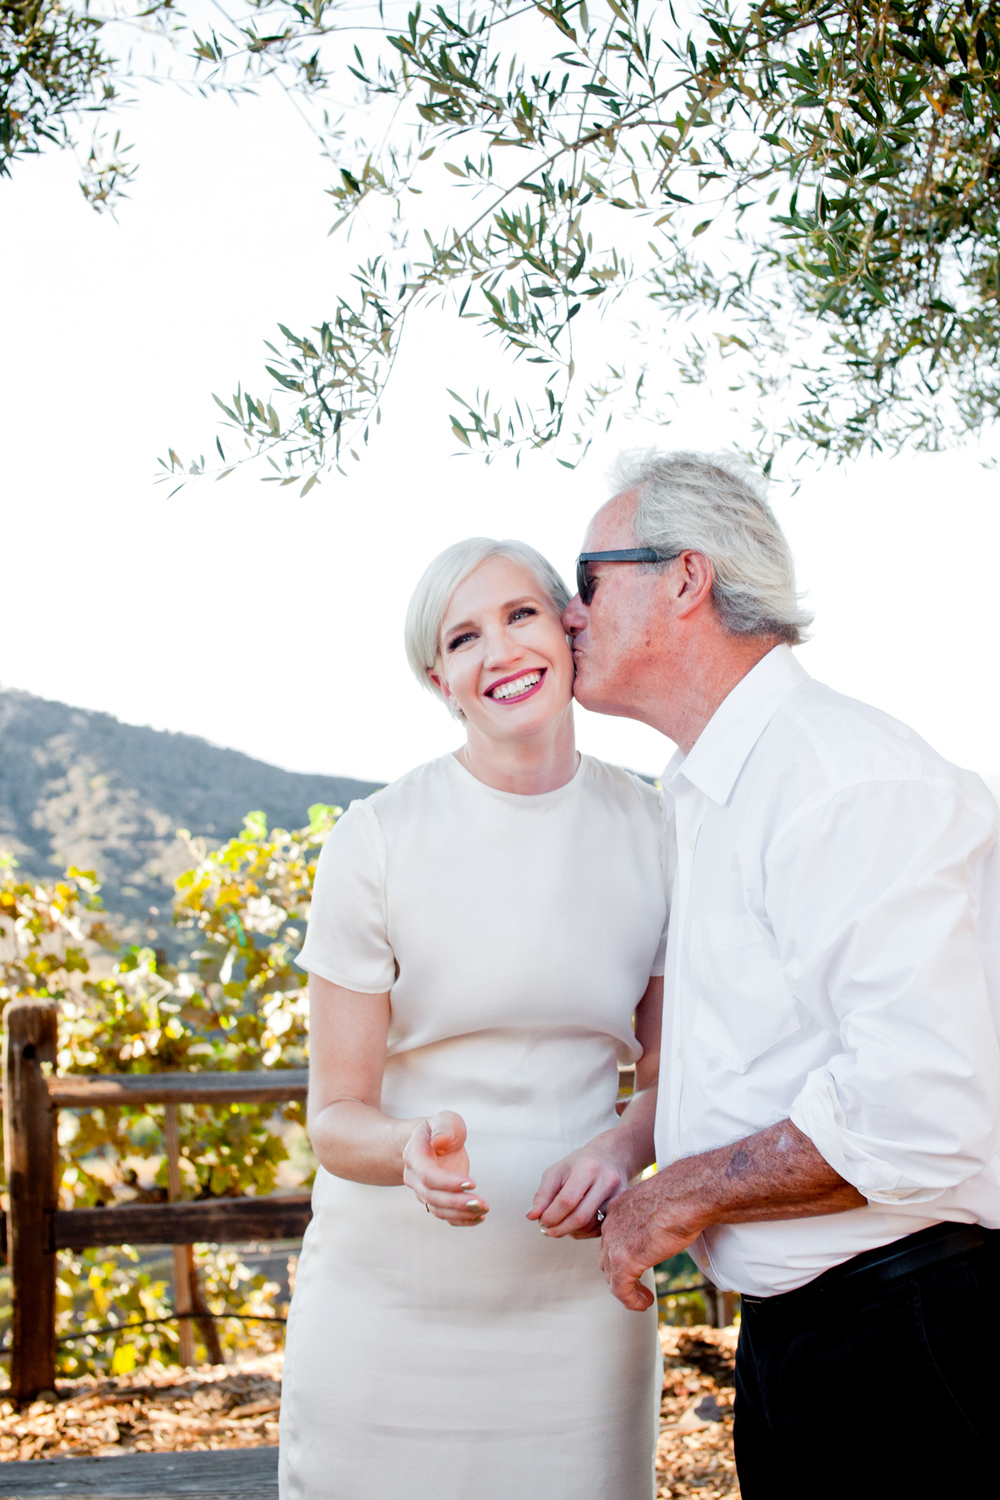 022_CarlyGaebe_SteadfastStudio_WeddingPhotography_Malibu_LosAngeles_LA_California_Winery_Hilltop_CieloFarms_LanvinDress_Family_Vineyard.jpg